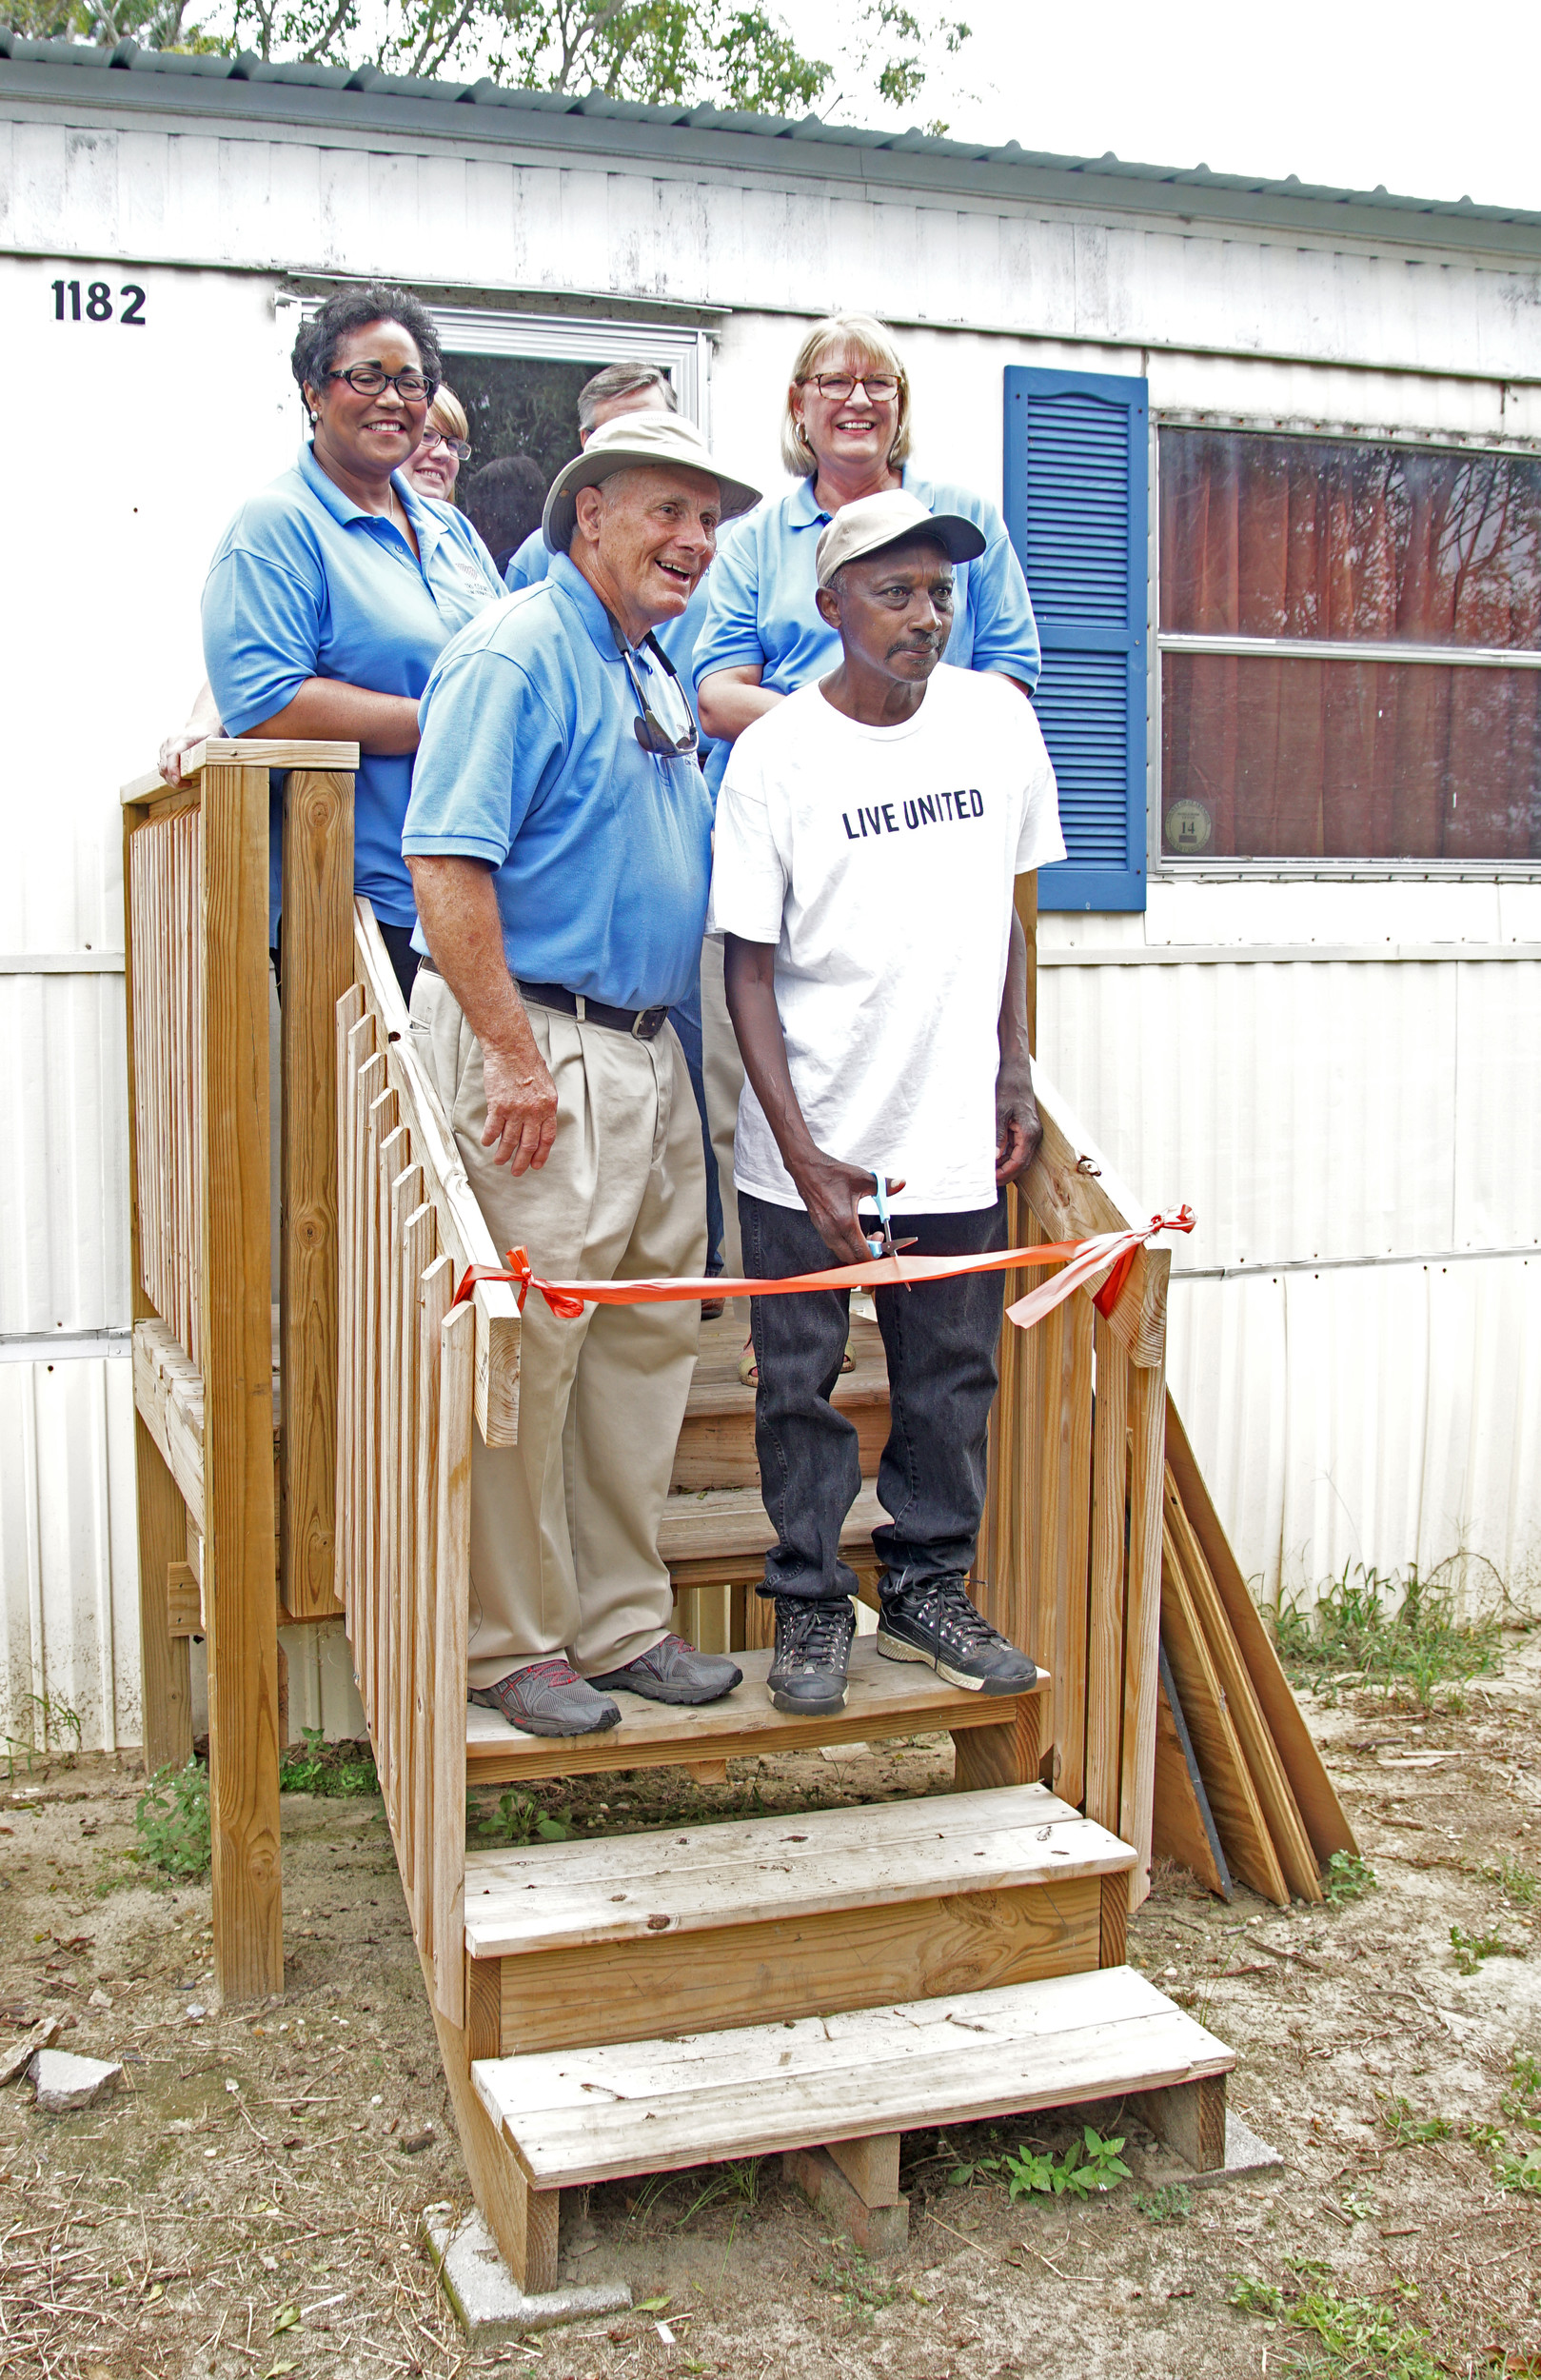 Curtis Billie and some of the volunteers who helped repair his home after it was damaged during the October 2015 flood cut a ribbon celebrating Billie's return to his home this past week near Pinewood.